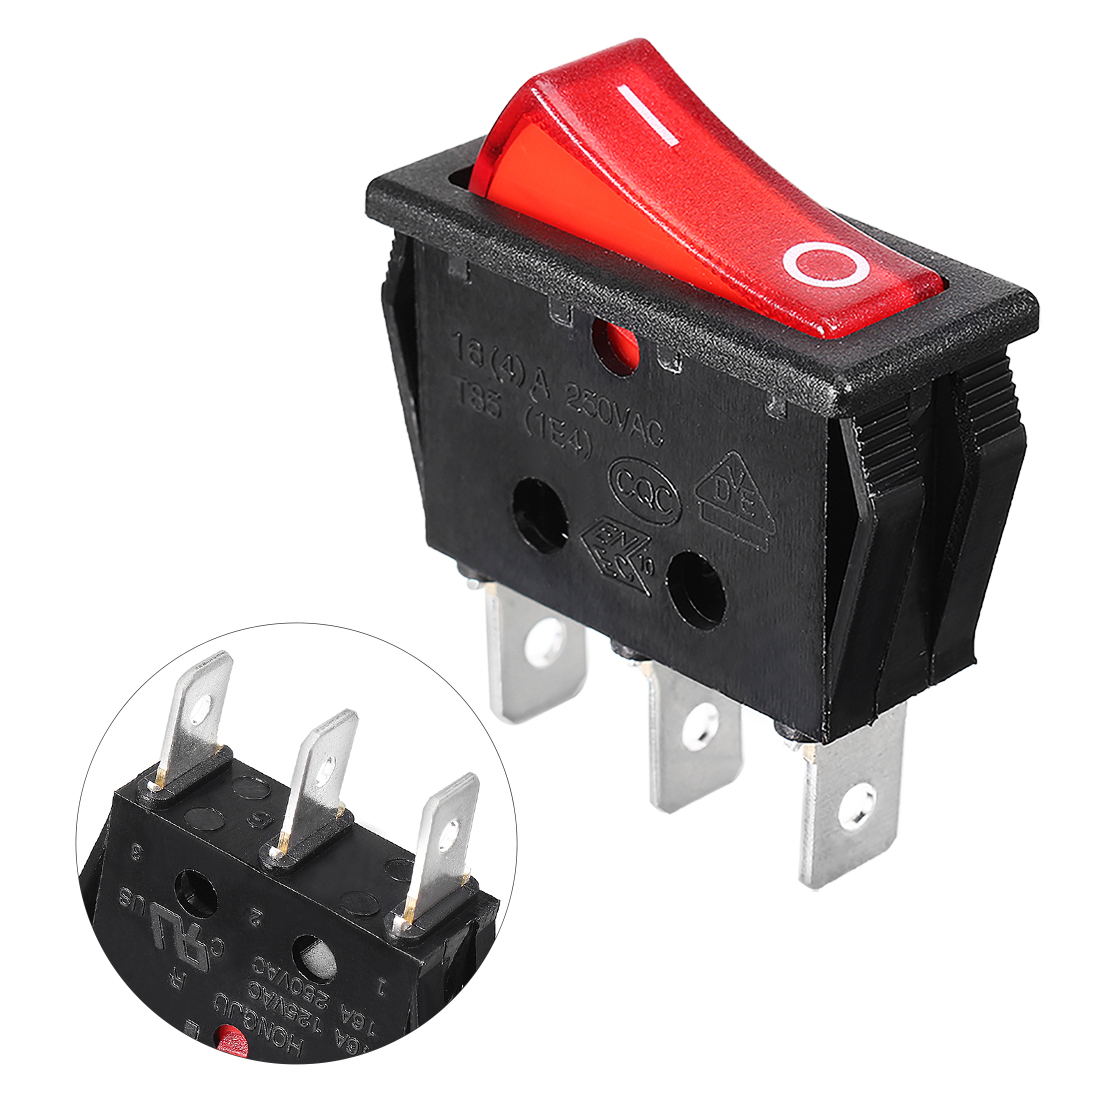 AC 250V 16A Red Light SPST ON/OFF Power Control Boat Rocker Switch UL Listed